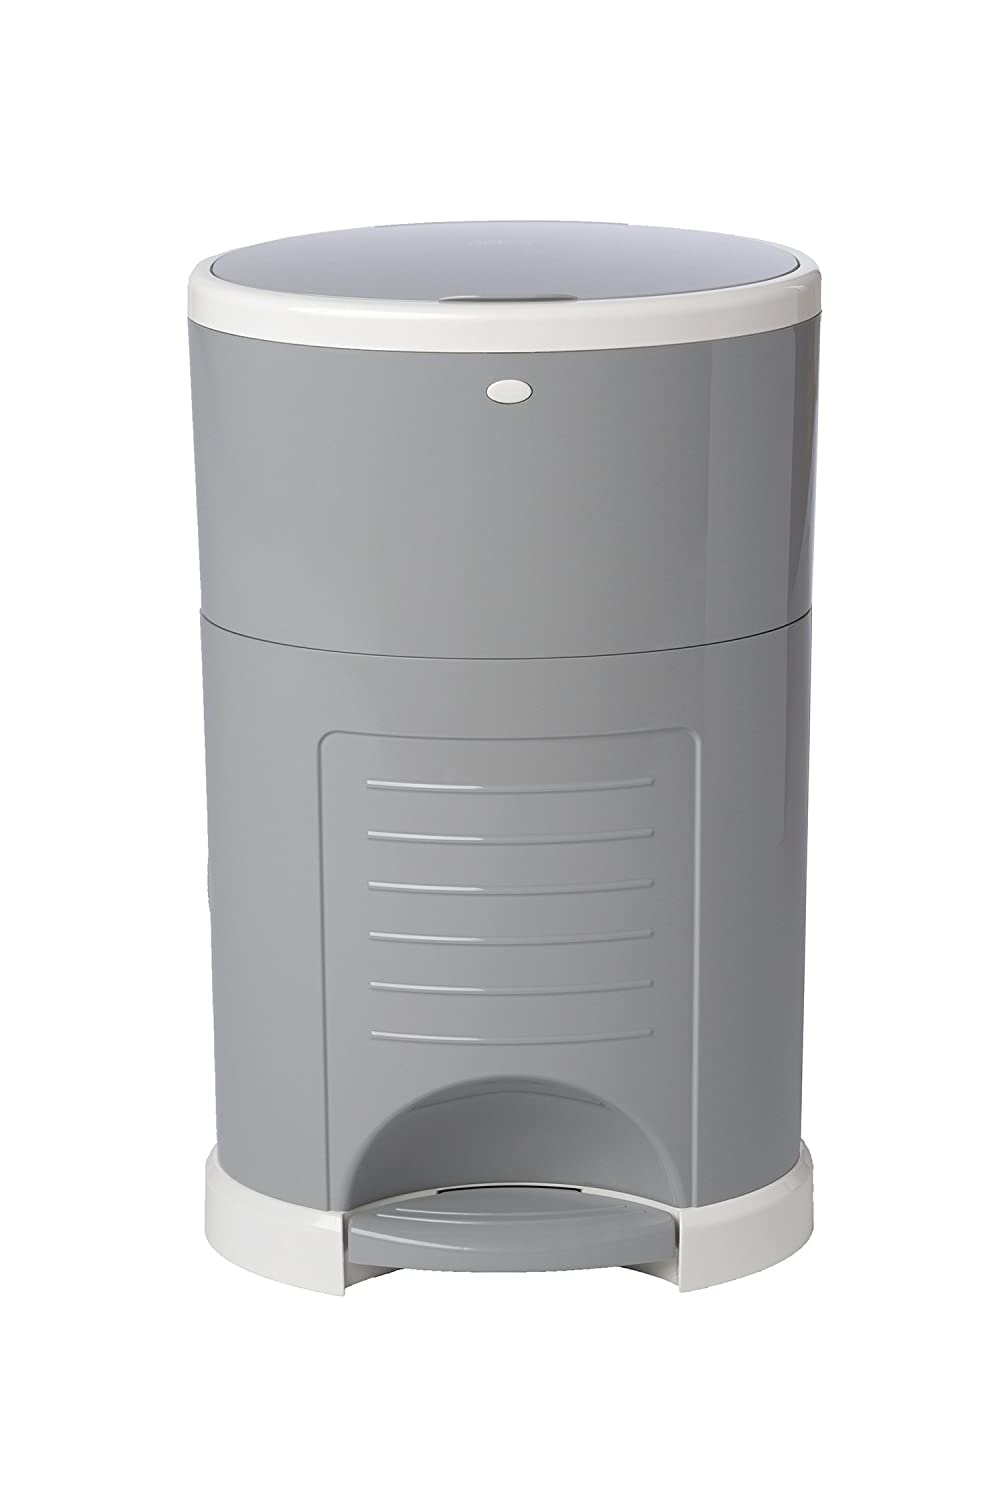 Dekor Classic Hands-Free Diaper Pail | Easiest to Use | Just Step. Drop. Done! | Pail Won't Absorb Odors/Rust | 20 Second Bag Change | Most Economical Refill System | Gray 2-11126-1